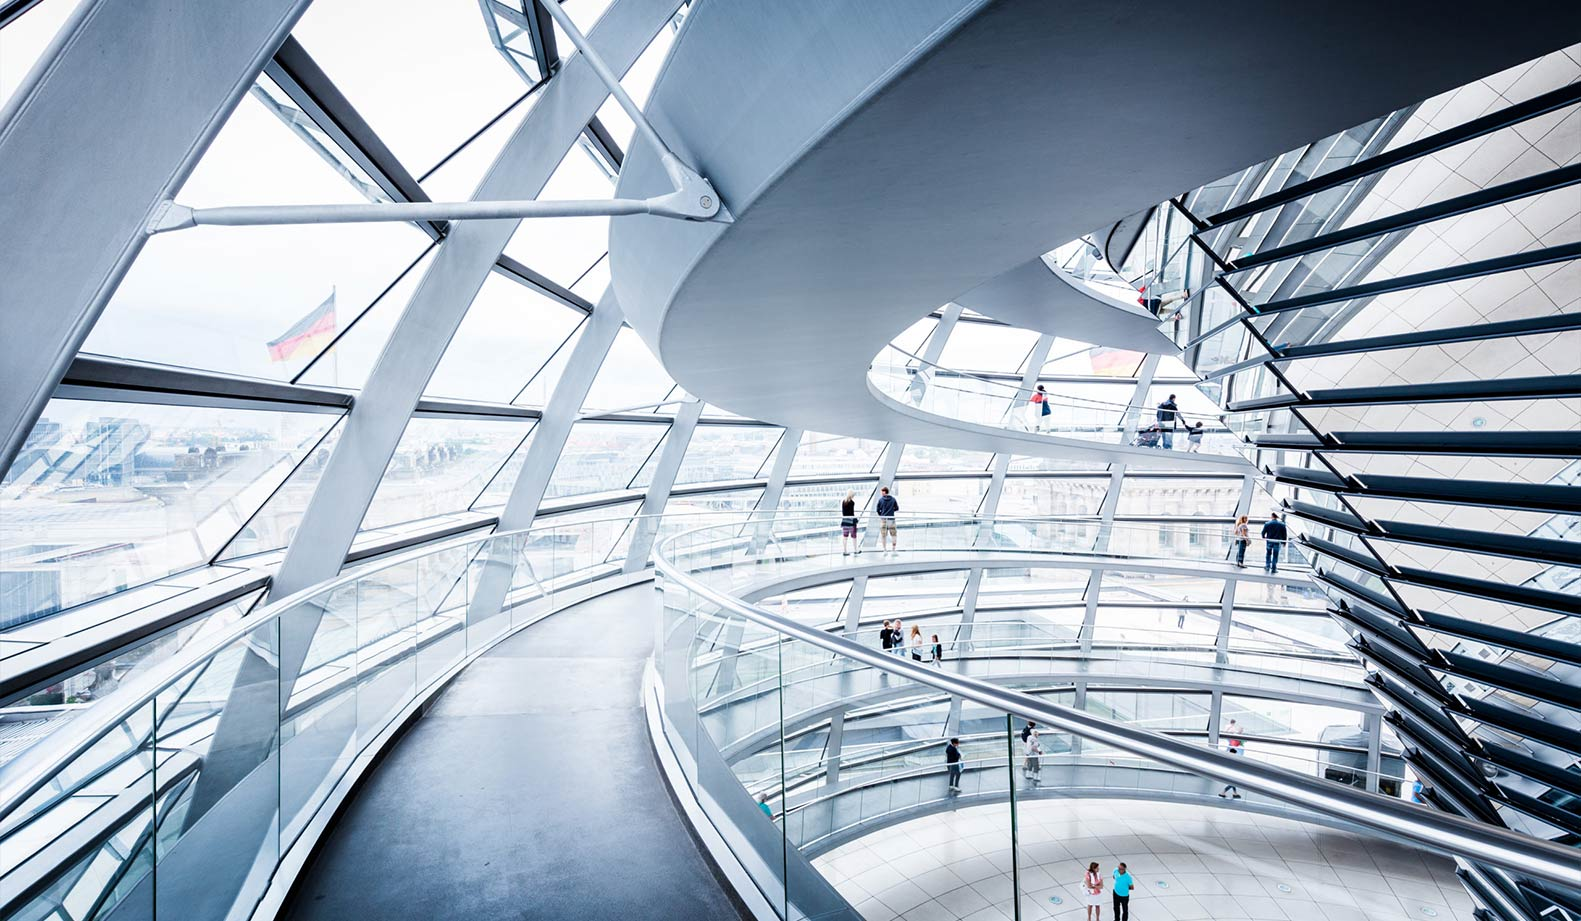 BERLIN - JULY 19, 2015: Interior view of famous Reichstag Dome in Berlin, Germany. Constructed to symbolize the reunification of Germany it's now one of Berlin's most important landmarks.